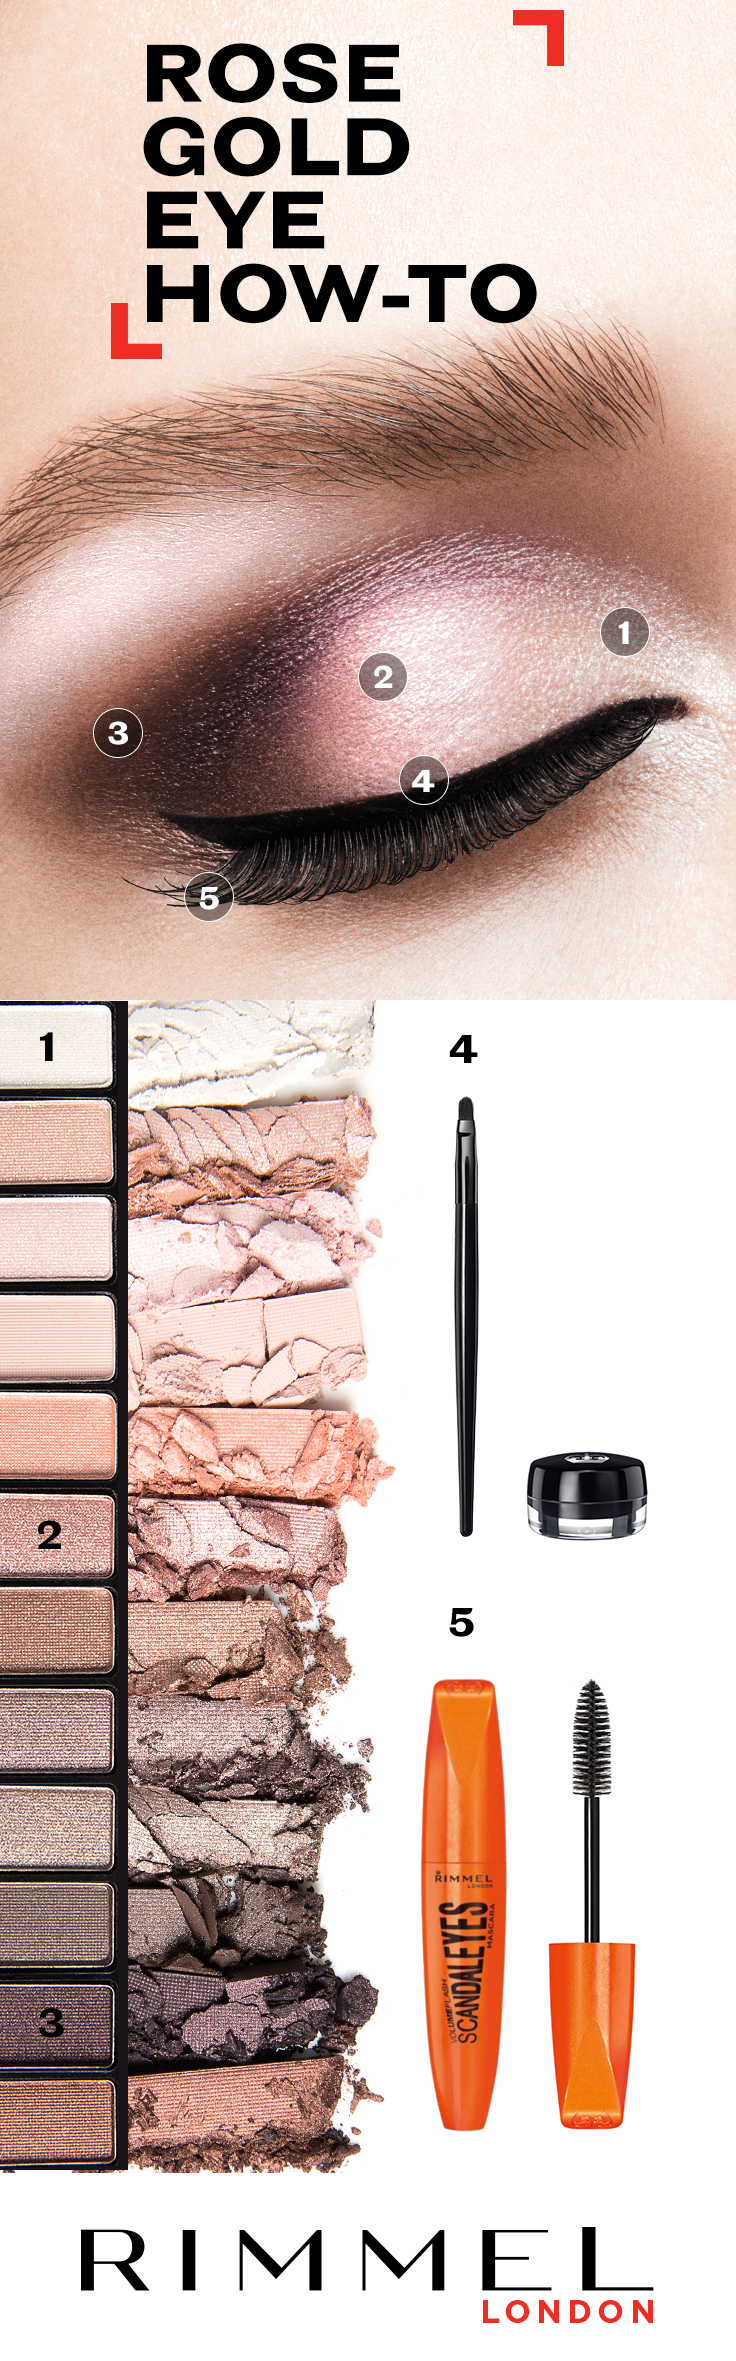 Photo of For a gorgeous eyeshadow idea, follow this step by step guide using Rimmel Londo…